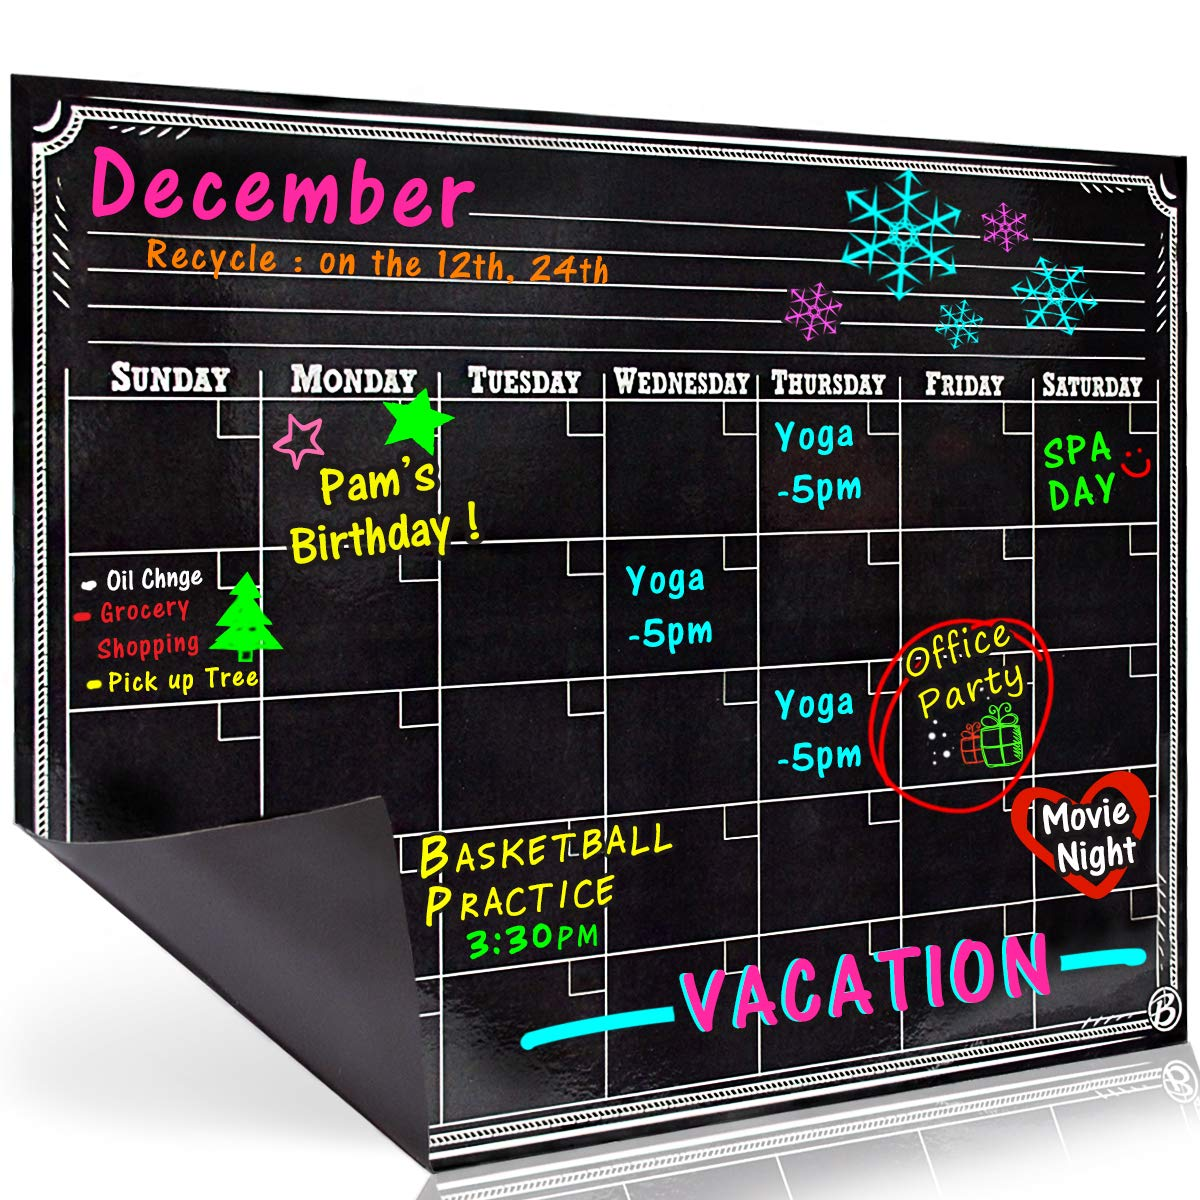 Bigtime Signs Dry Erase Magnetic Refrigerator Calendar Board - Black Chalkboard Look Printed Design - Monthly for Kitchen Fridge| 12 inch x 16 inch - Use with Wet Wipe Fluorescent or Neon Markers by Bigtime Signs